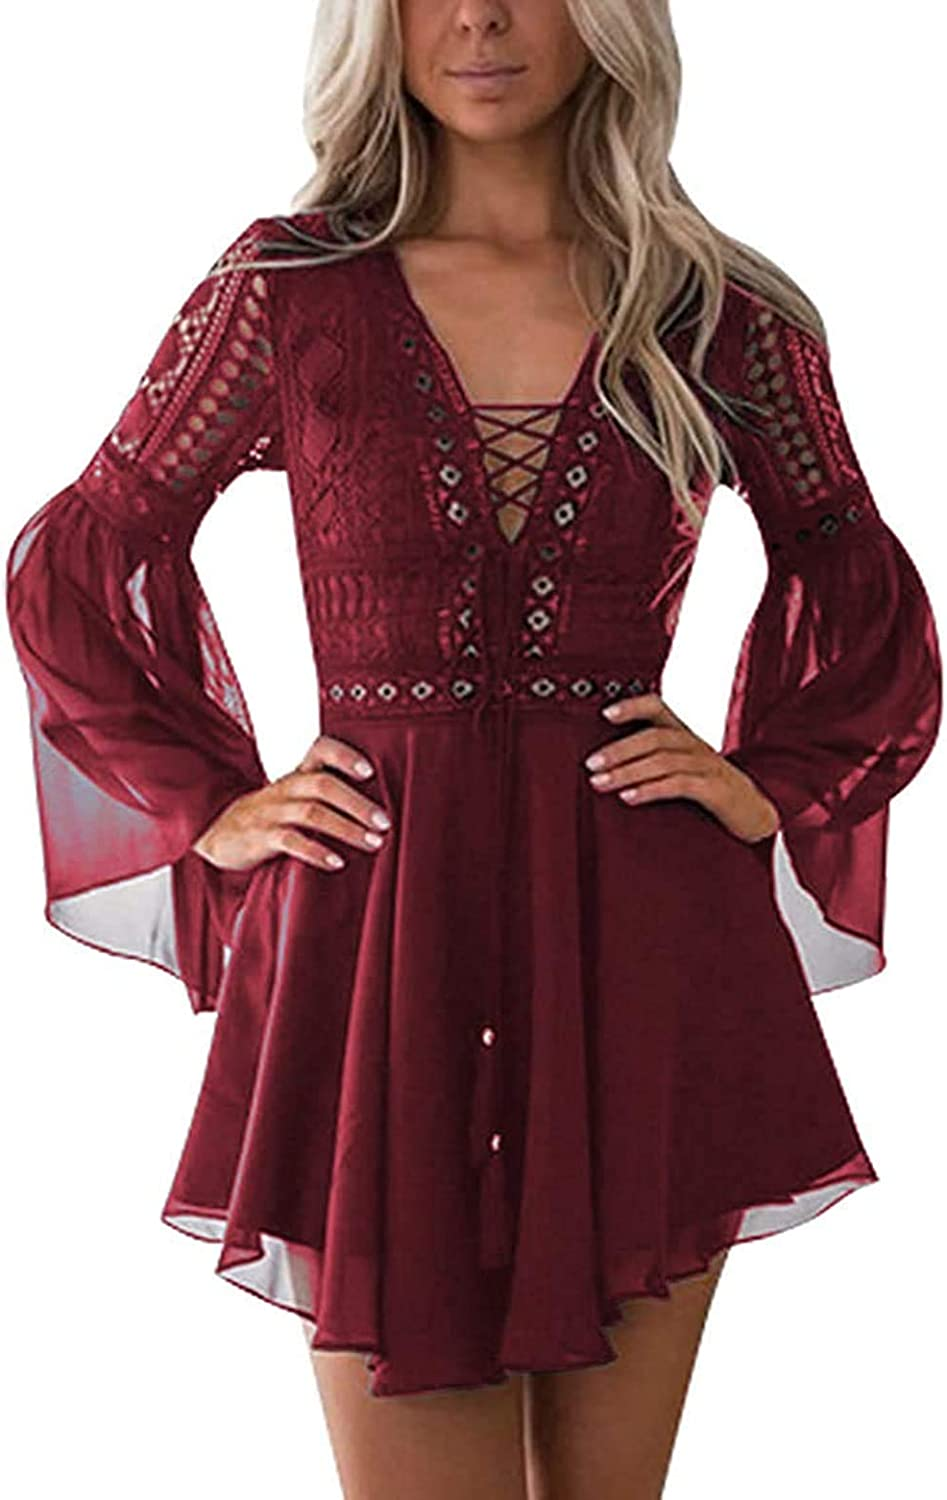 Lace Dresses for Max 78% OFF Women Boho Dress Cash special price Crochet Col Waisted Solid High